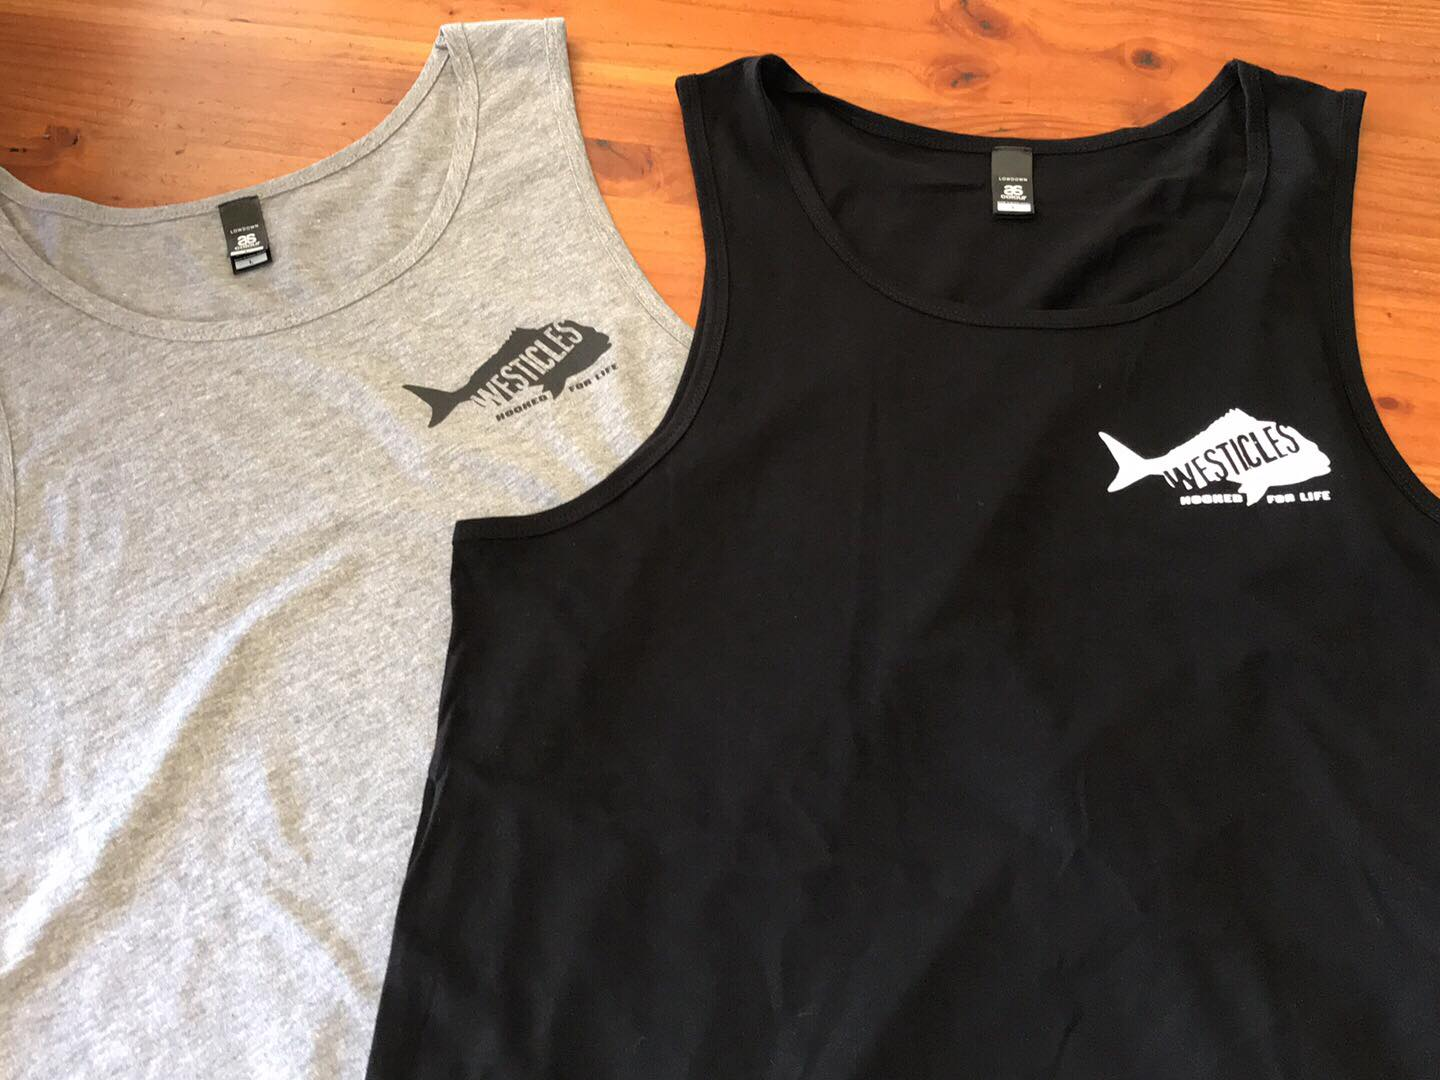 Singlets by Westicles Fishing